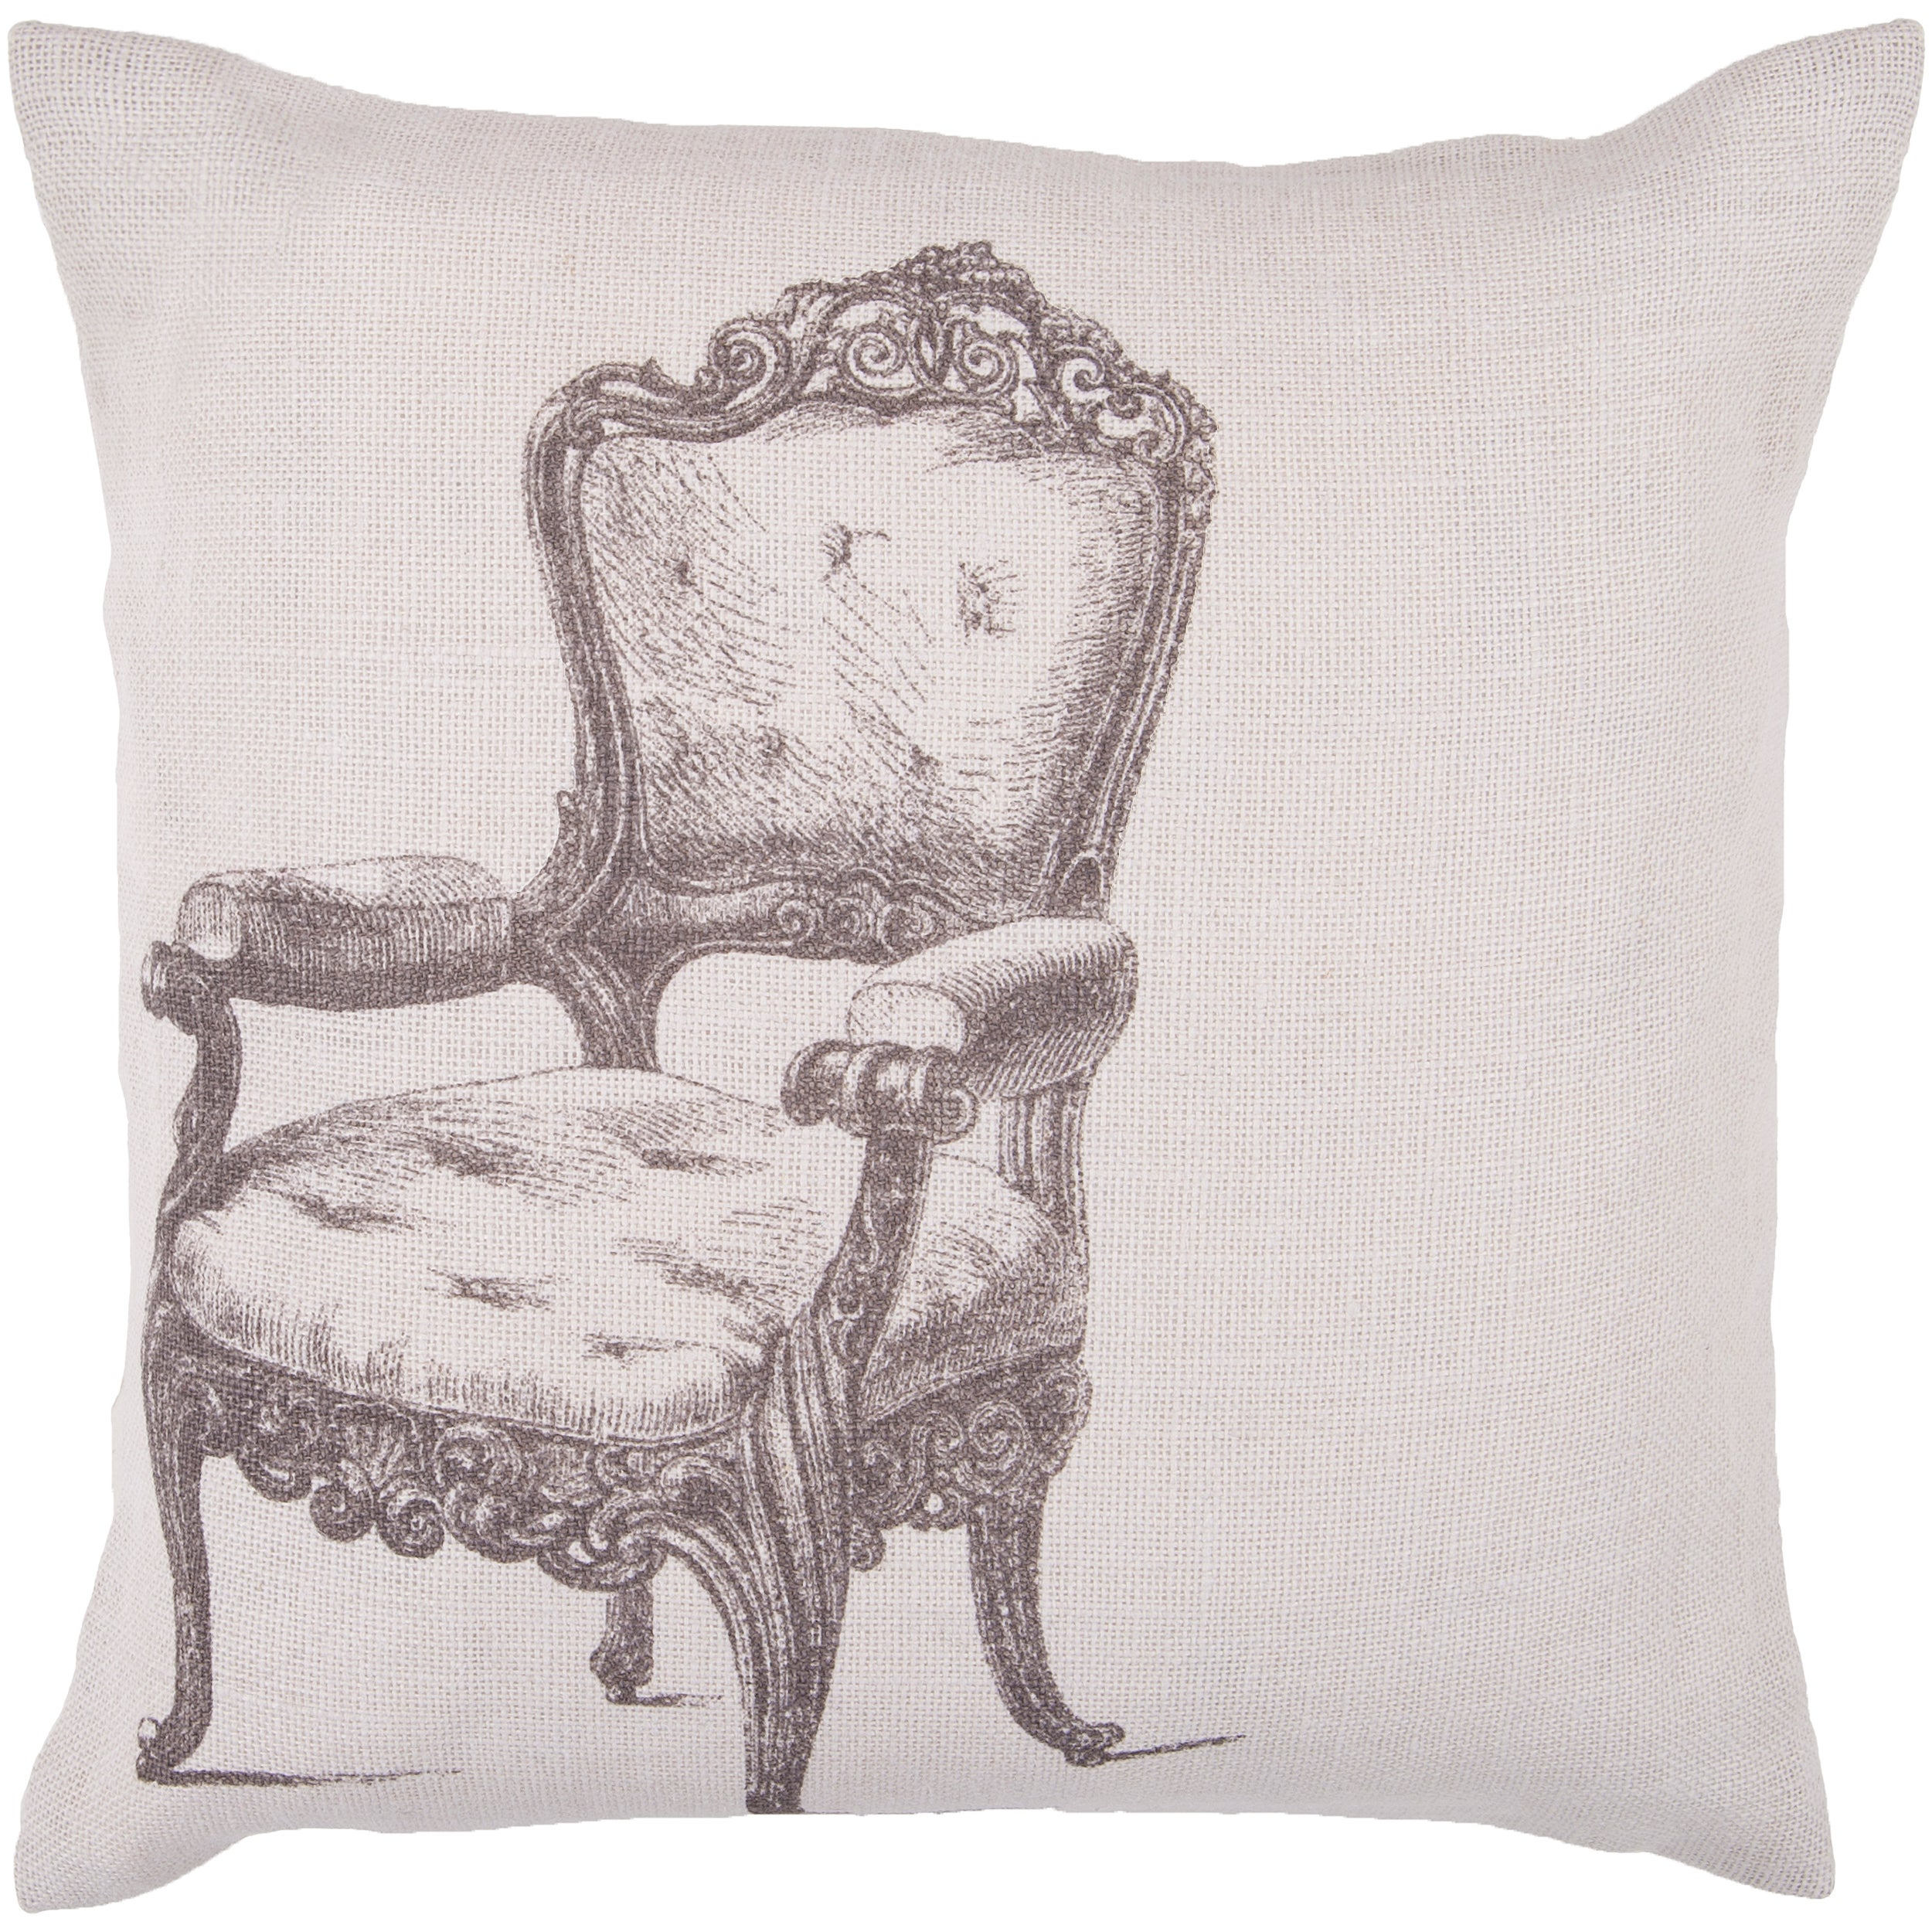 Zang 22-inch Poly Decorative Pillow